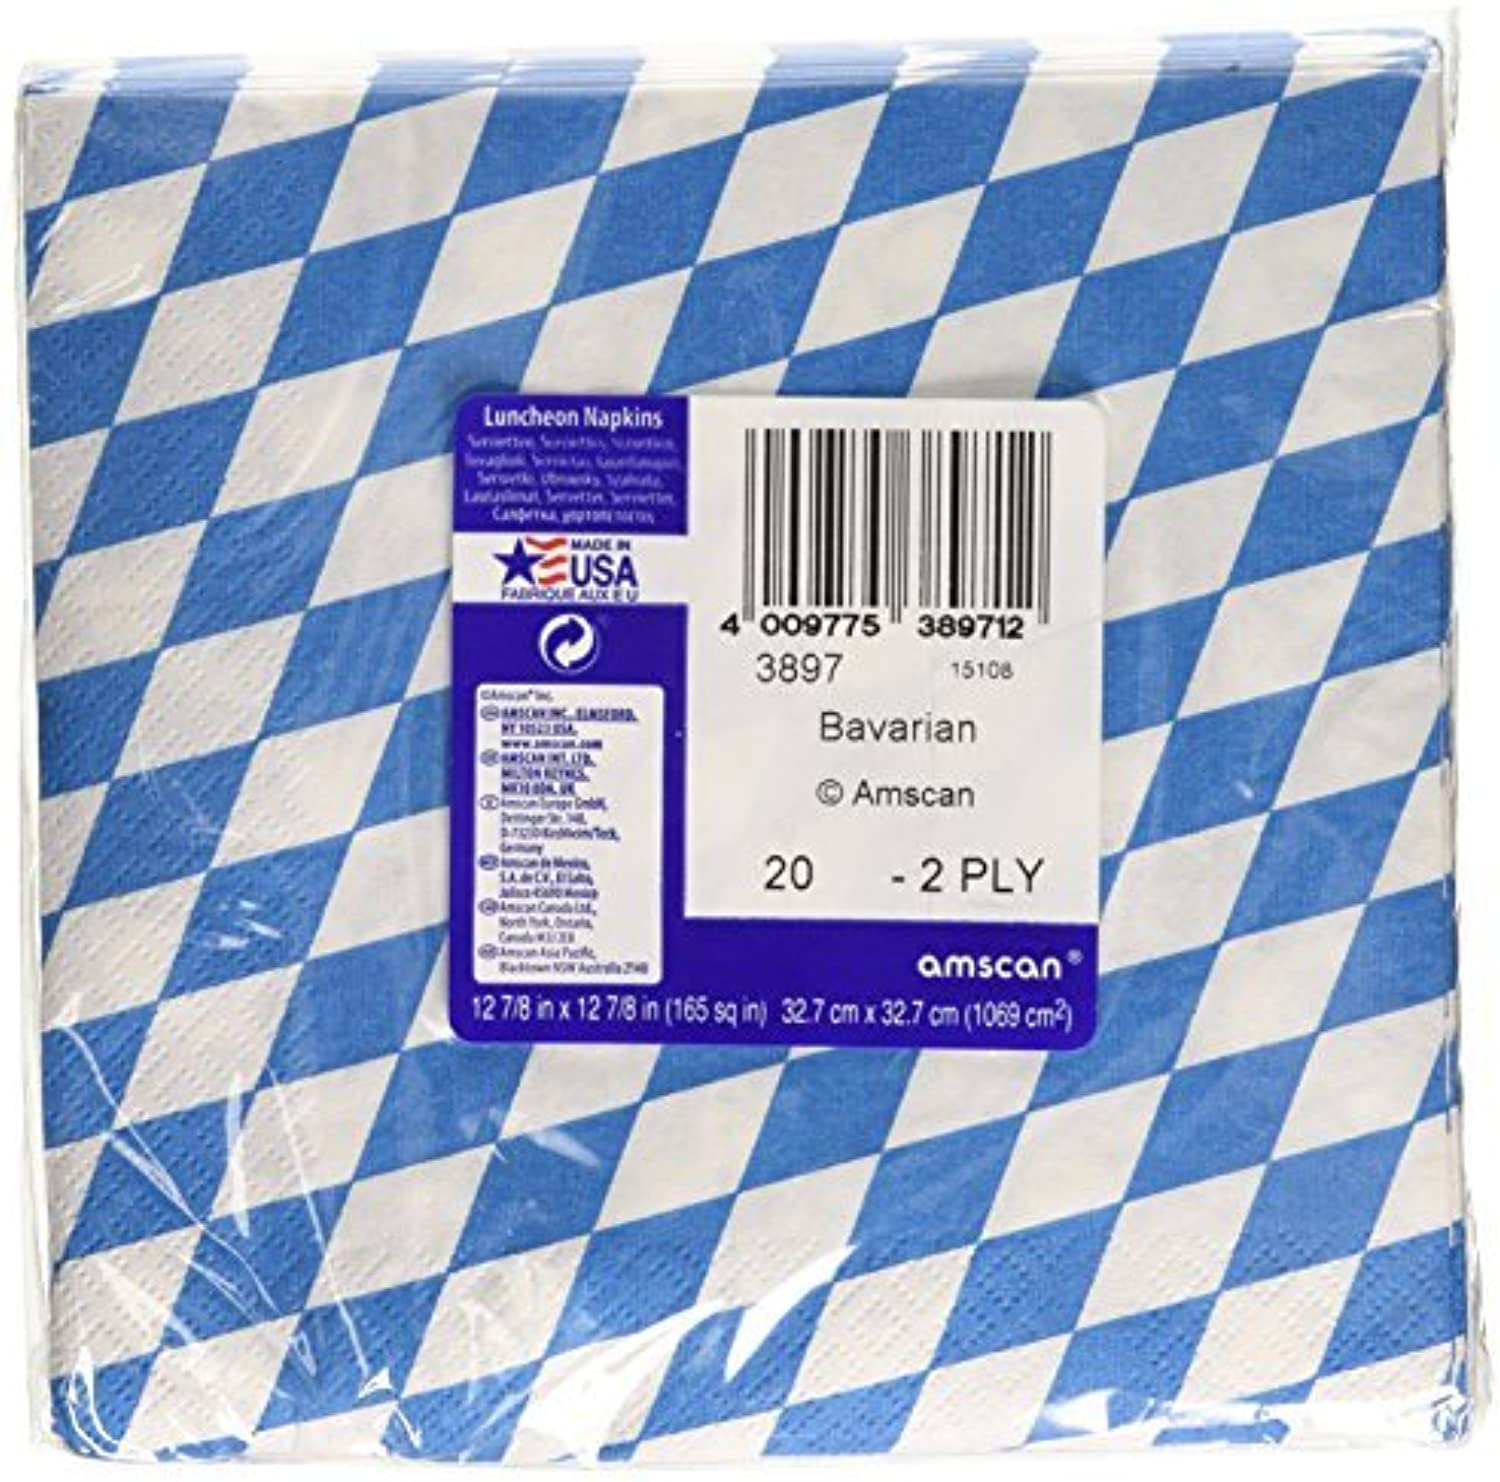 Amscan International 33 cm Bavarian Luncheon Napkins (bluee White) by Amscan International